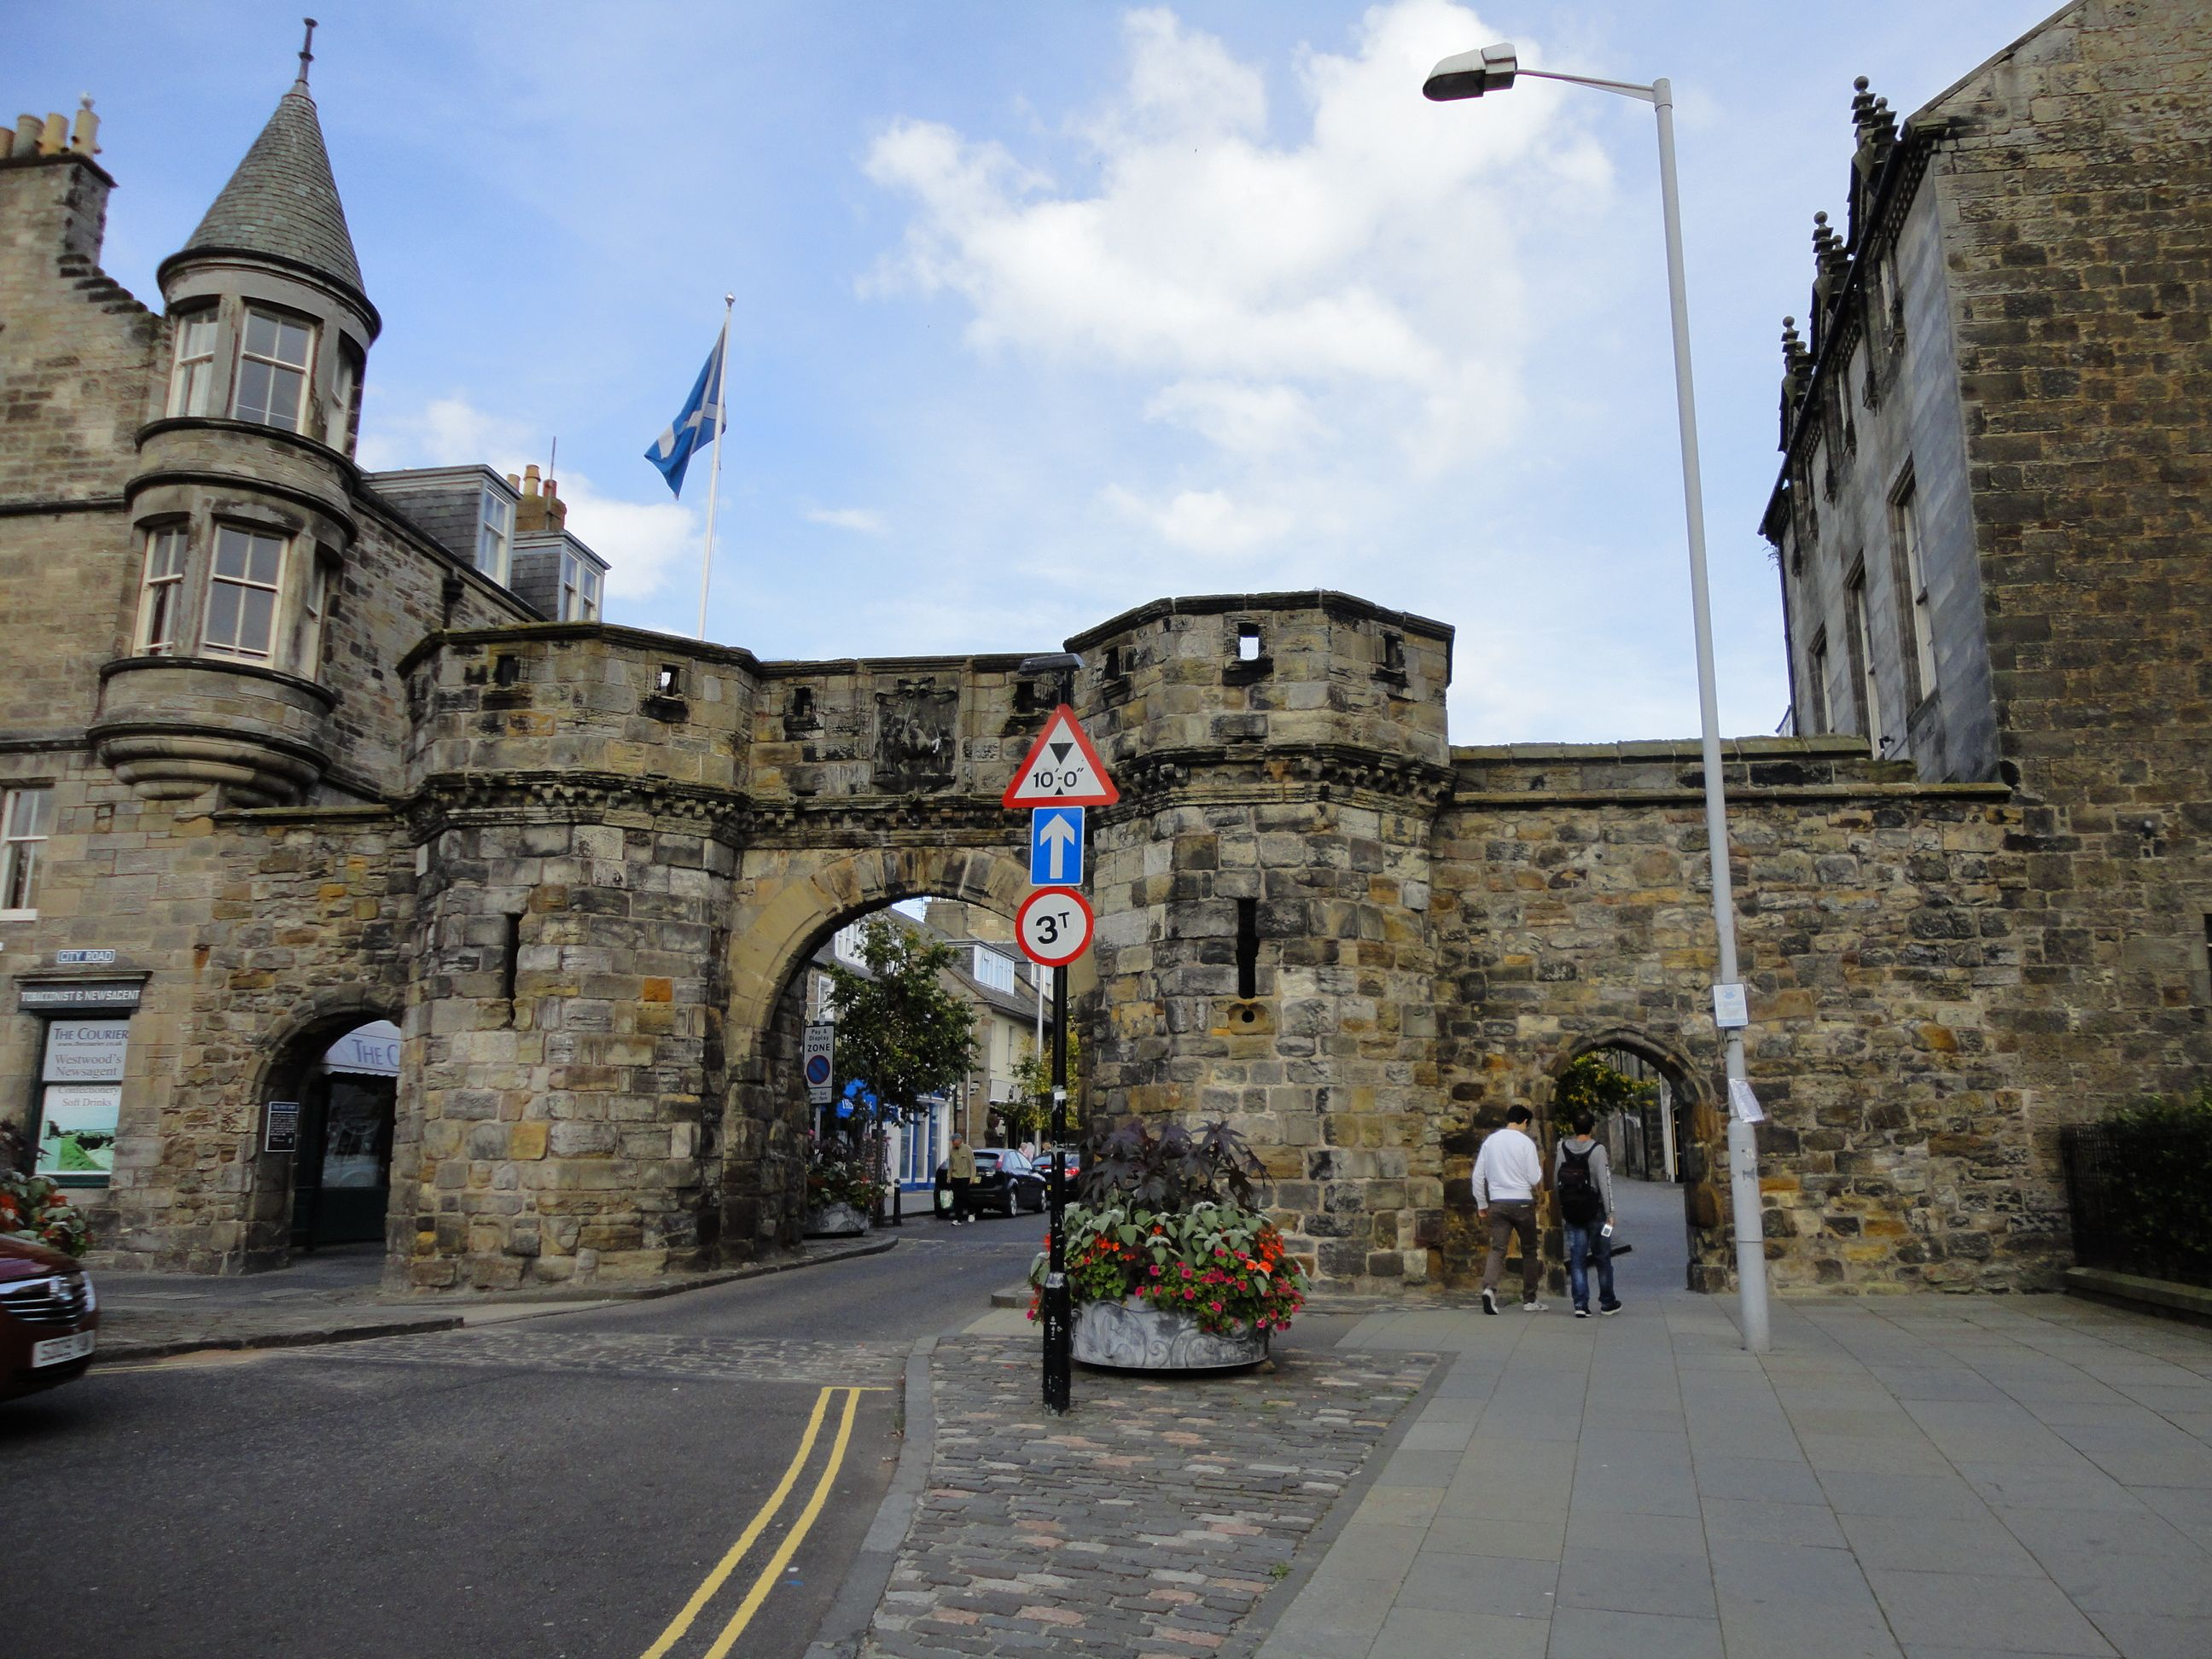 Entrance to St. Andrews in Fife, Scotland